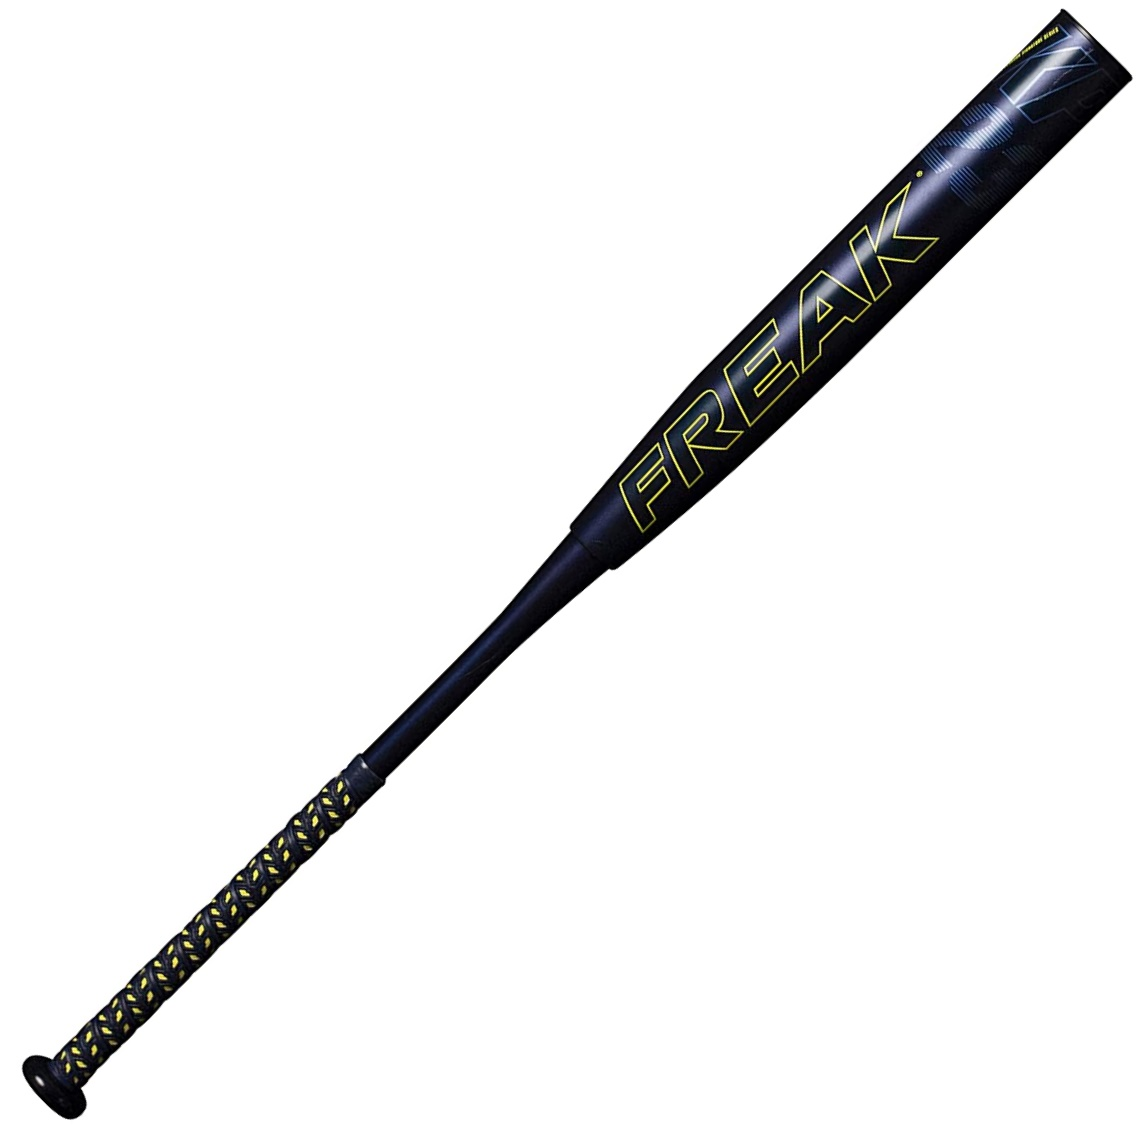 miken-kyle-pearson-freak-23-12-usa-asa-maxload-slowpitch-softball-bat-34-inch-27-oz MKP21A-3-27   In addition the Flex 2 Power F2P handle optimizes handle flex